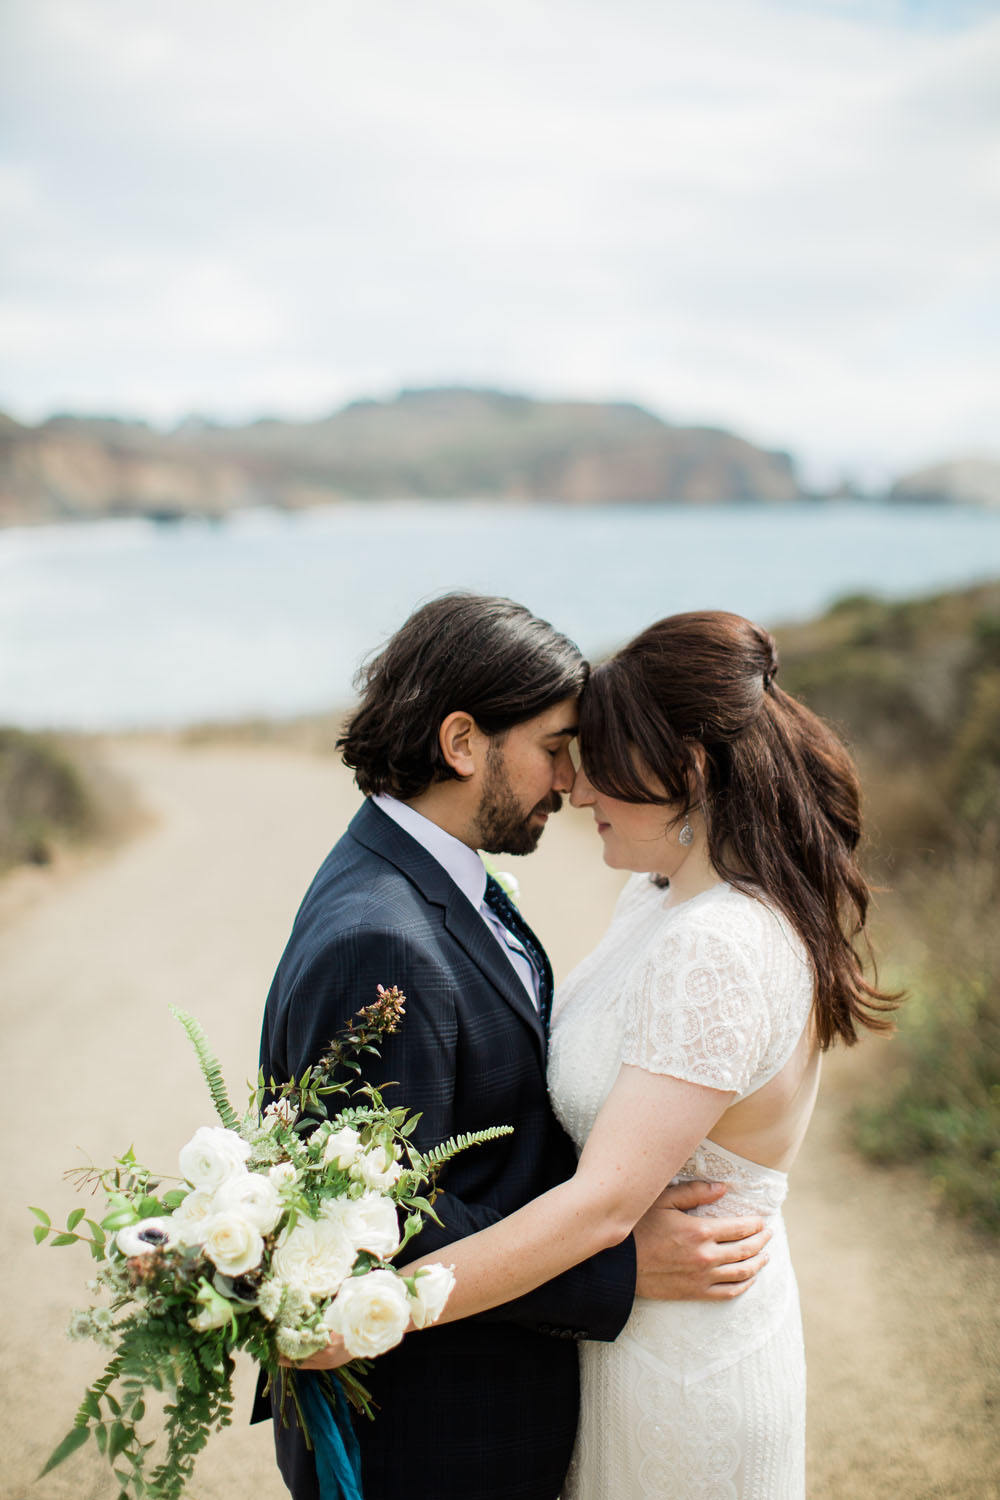 Modern White and Green Wedding at Headlands Center for the Arts